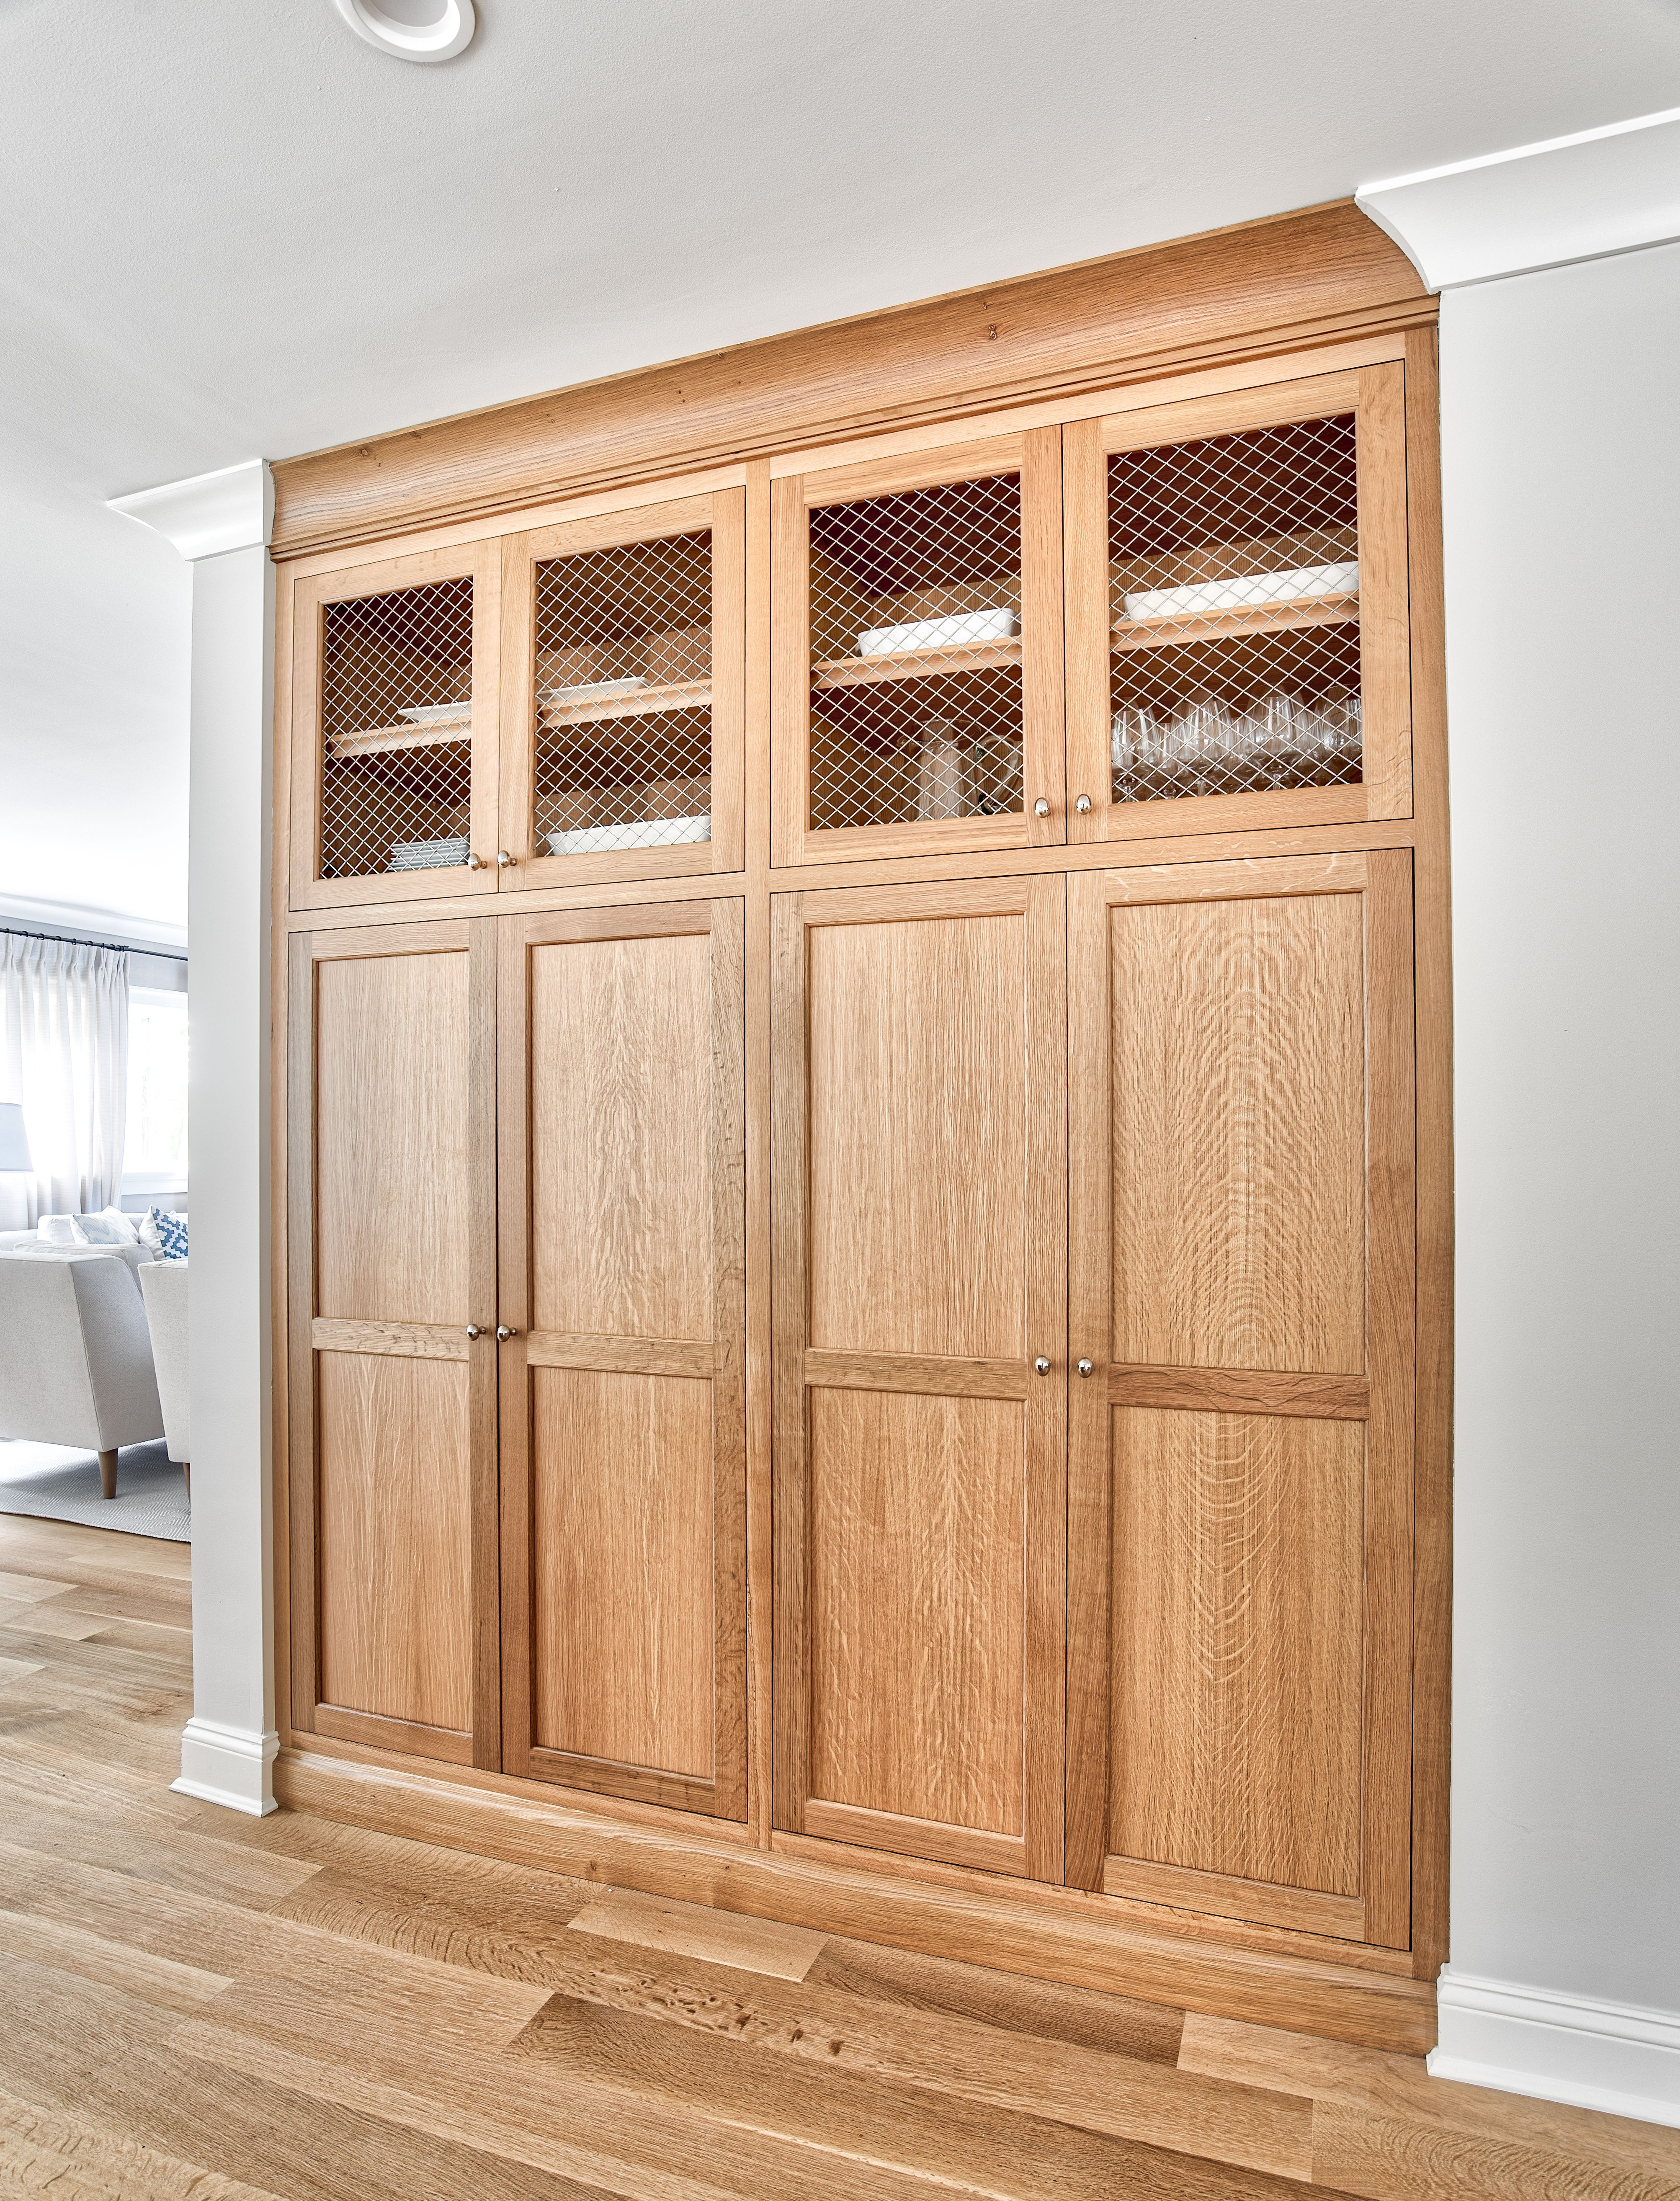 Oak Pantry With Brass Wire Mesh In 2020 Wood Pantry Cabinet Pantry Cabinet Built In Pantry